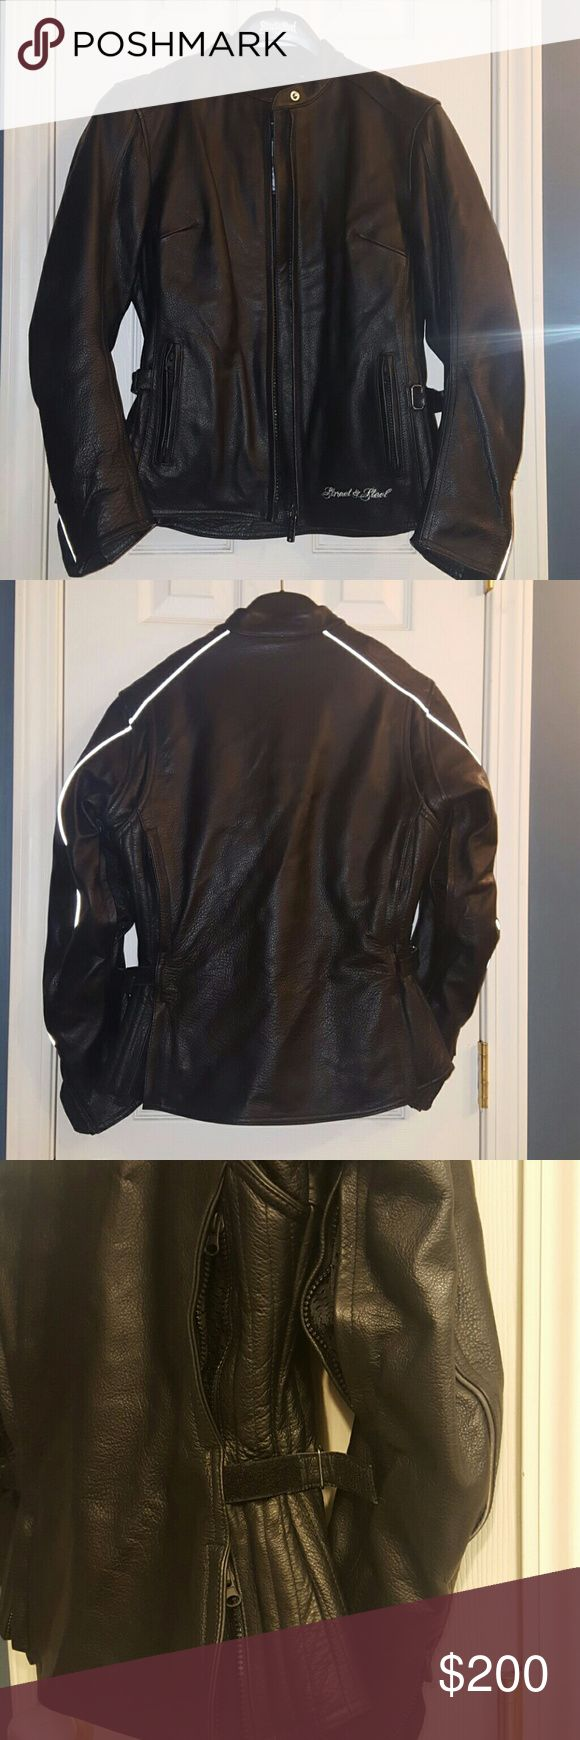 NEW Street & Steel 100 leather Motorcycle jacket